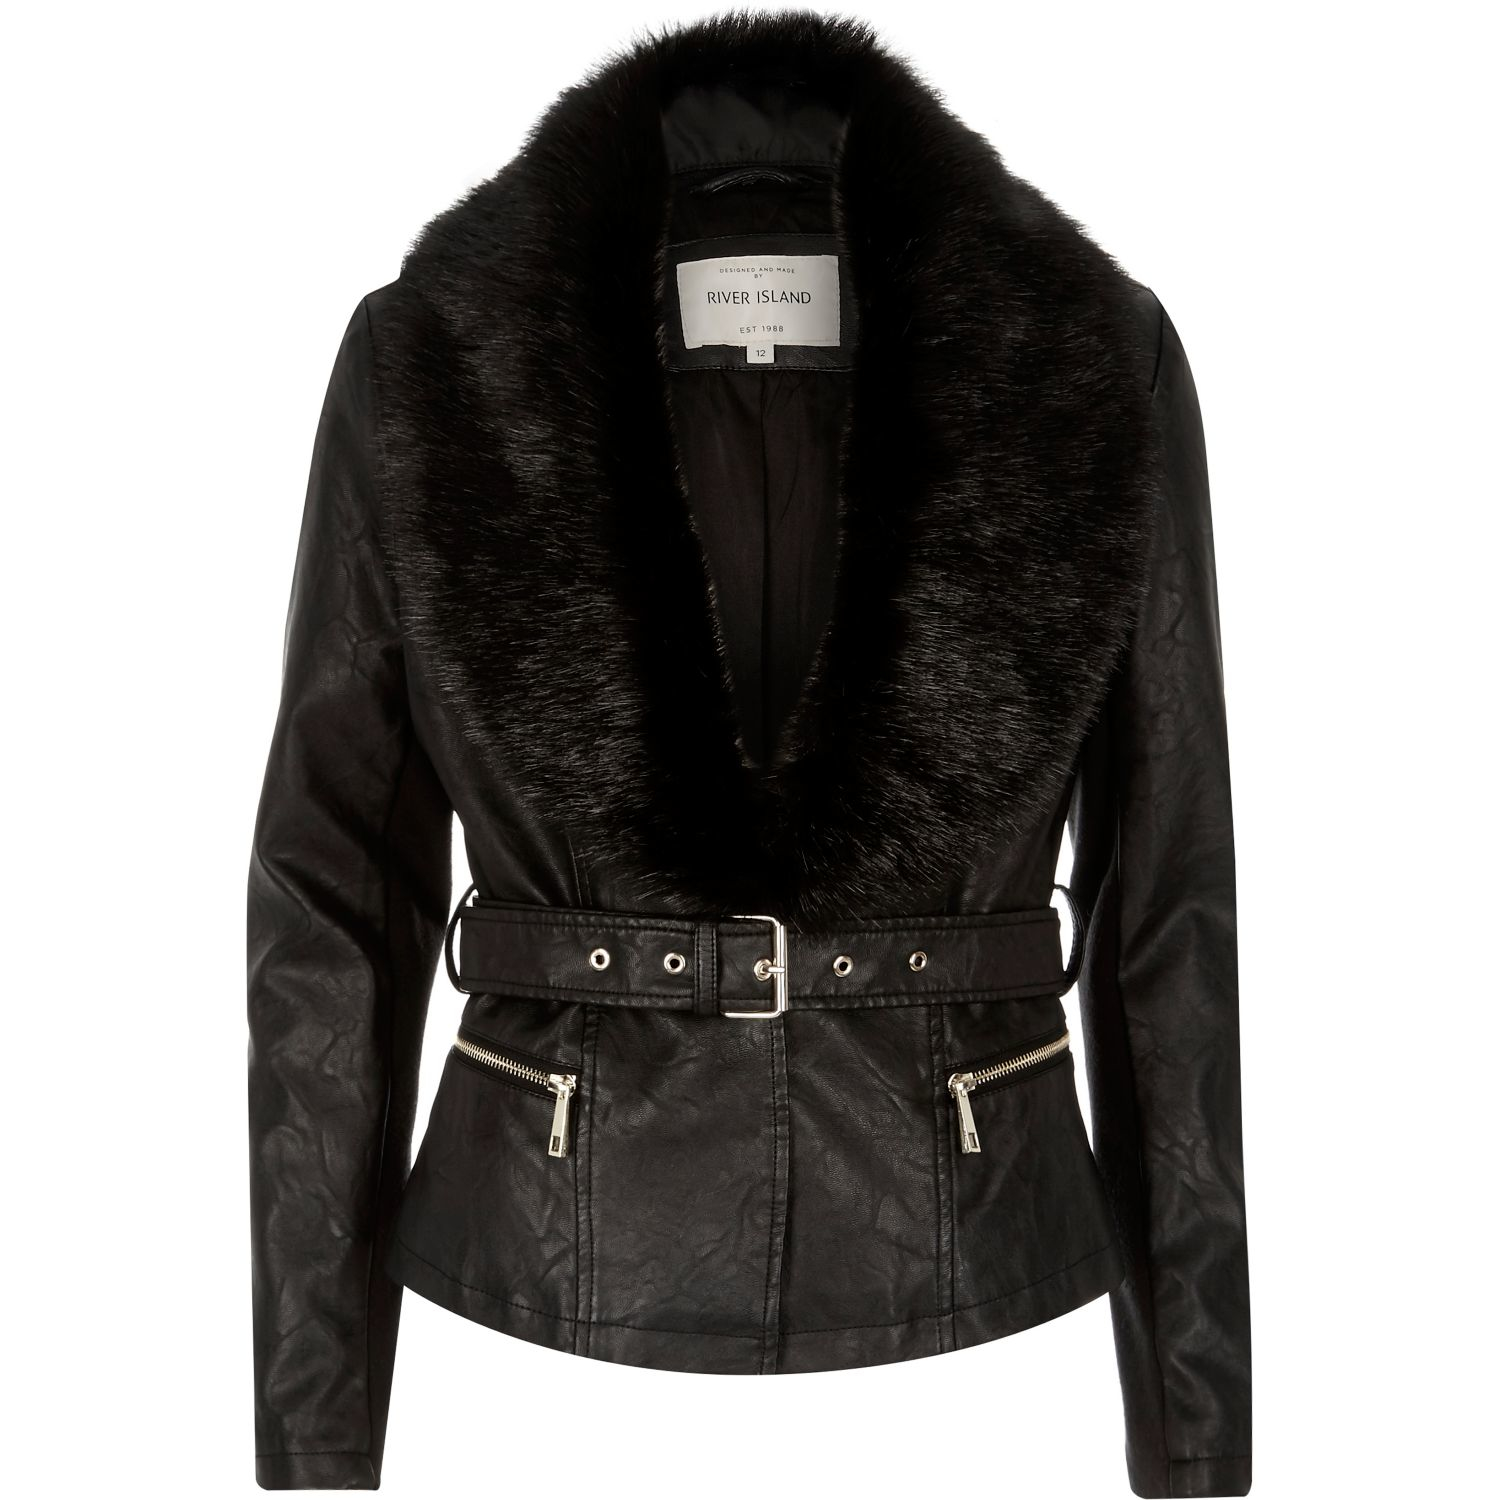 Leather And Faux Fur Coats Womens - Tradingbasis